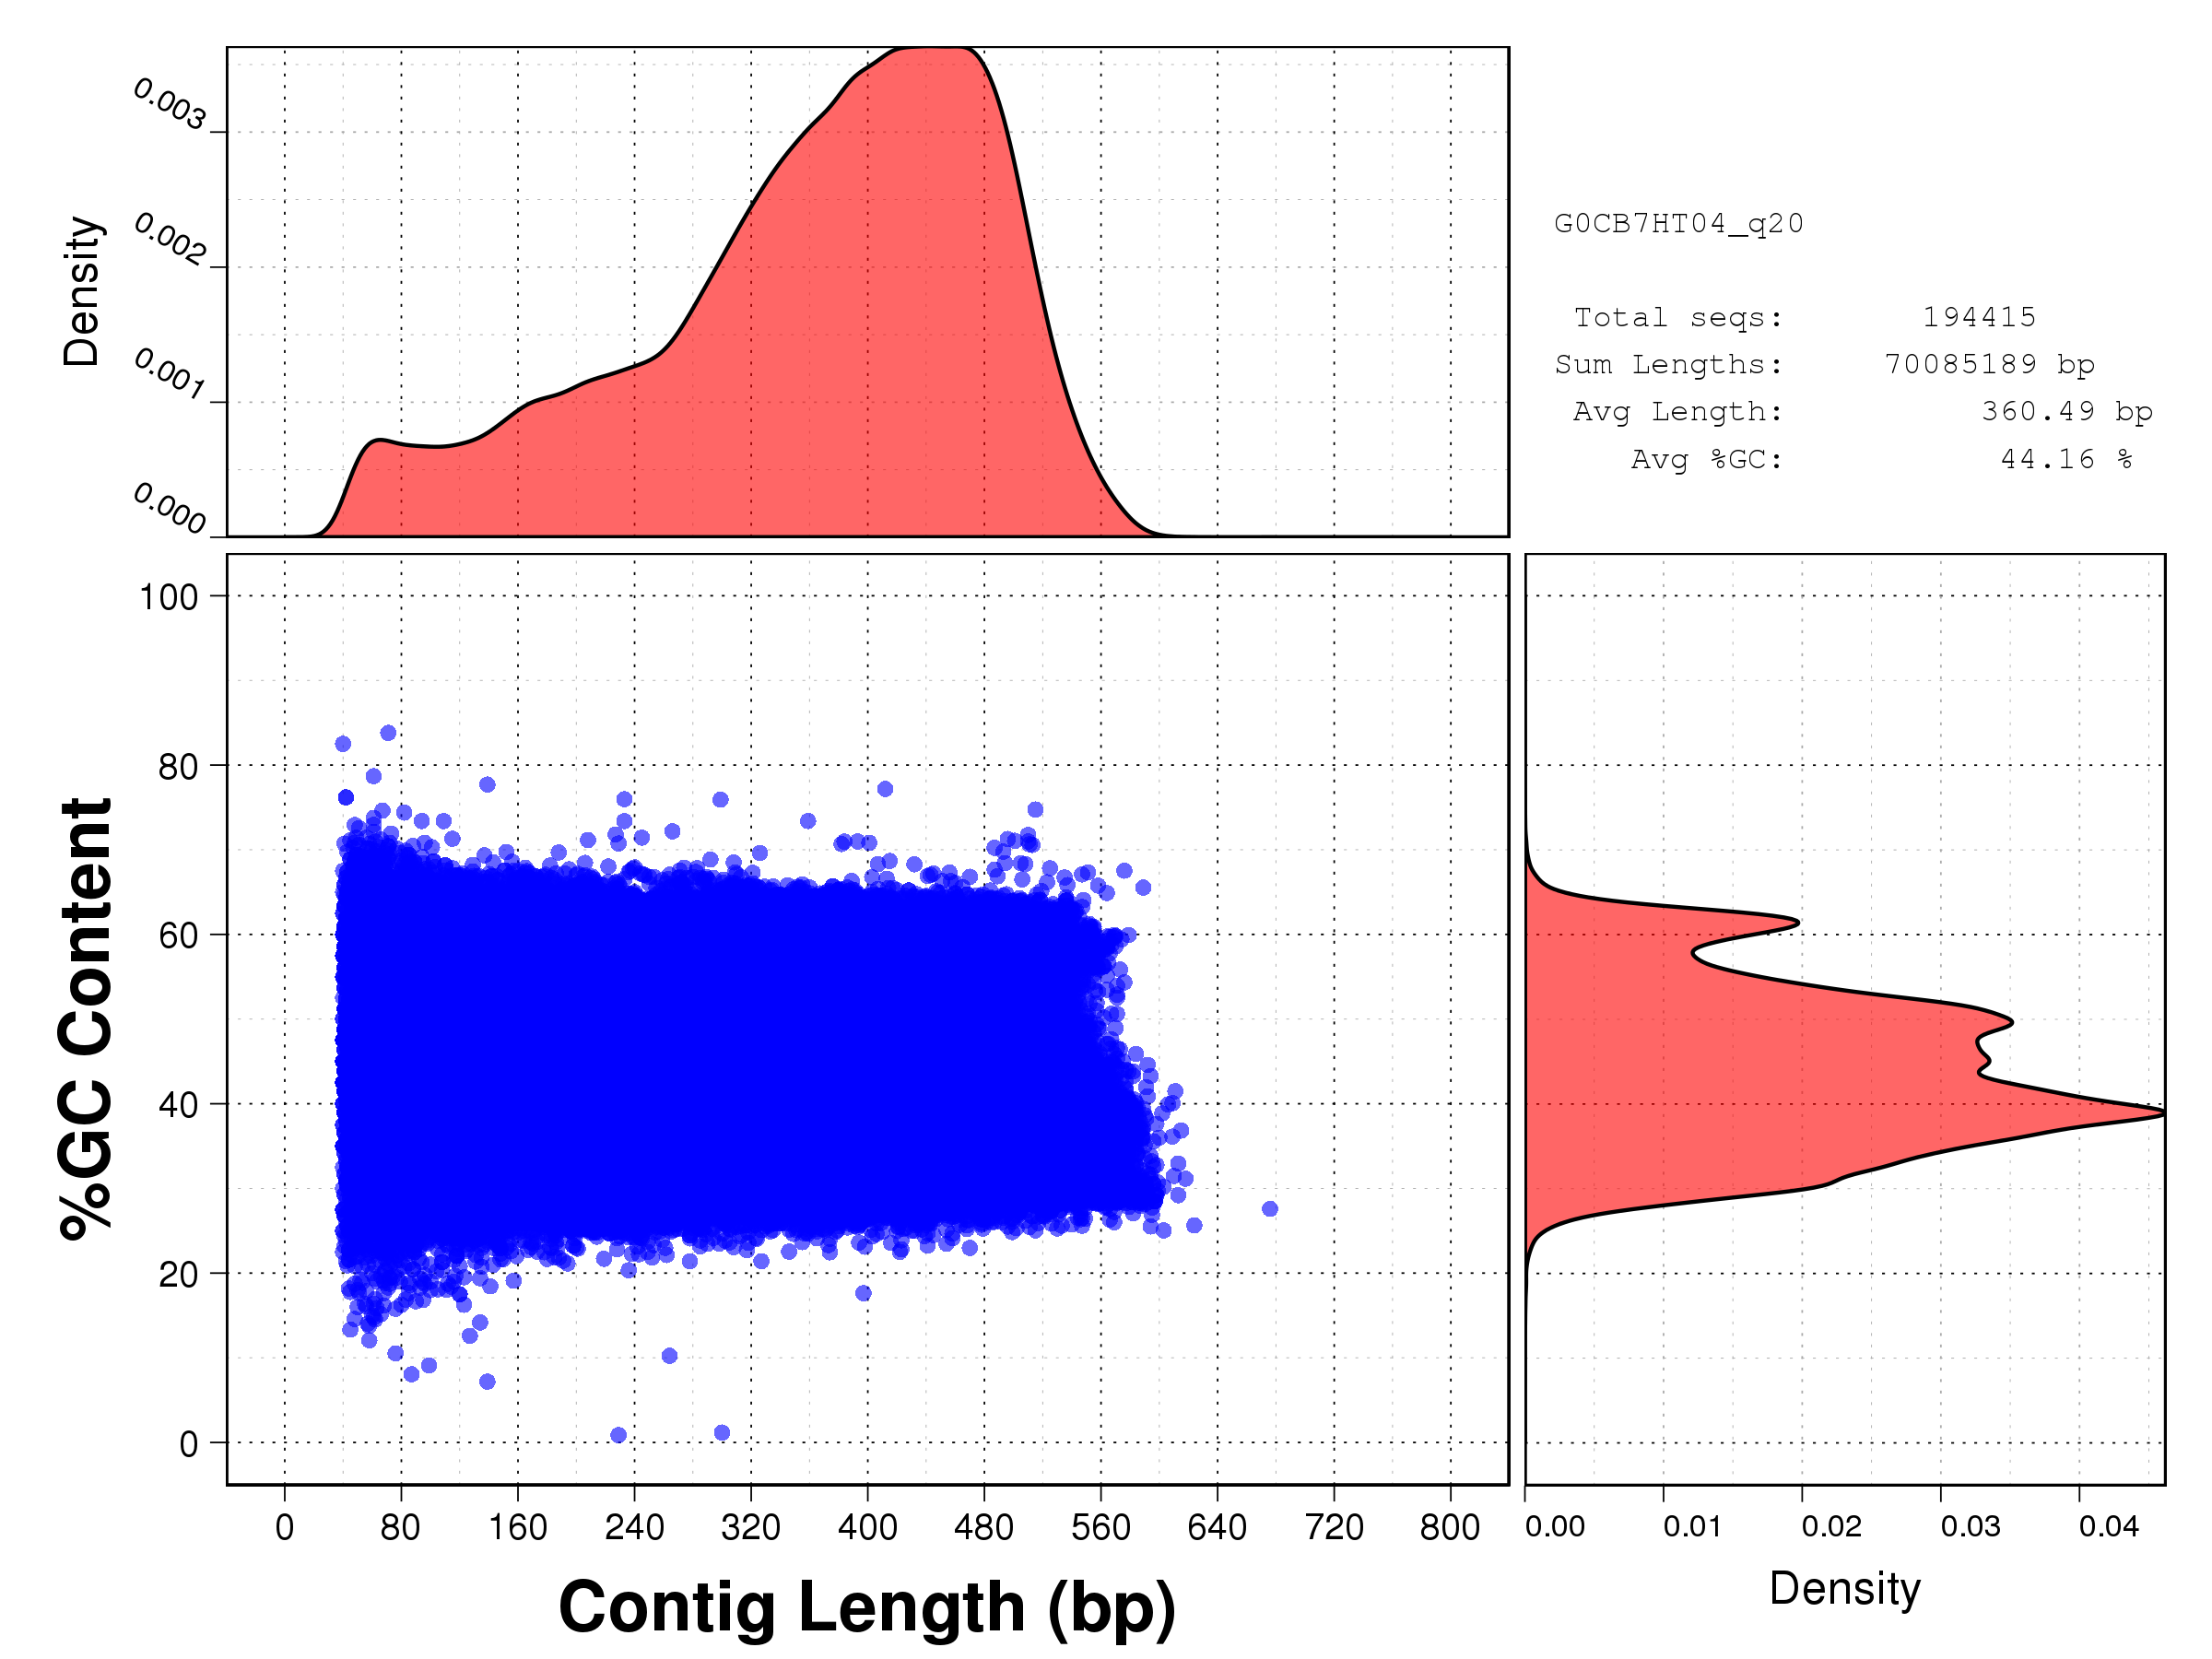 Length vs GC content plot for all starfish reads after Phred Q20 cleaning: G0CB7HT04.